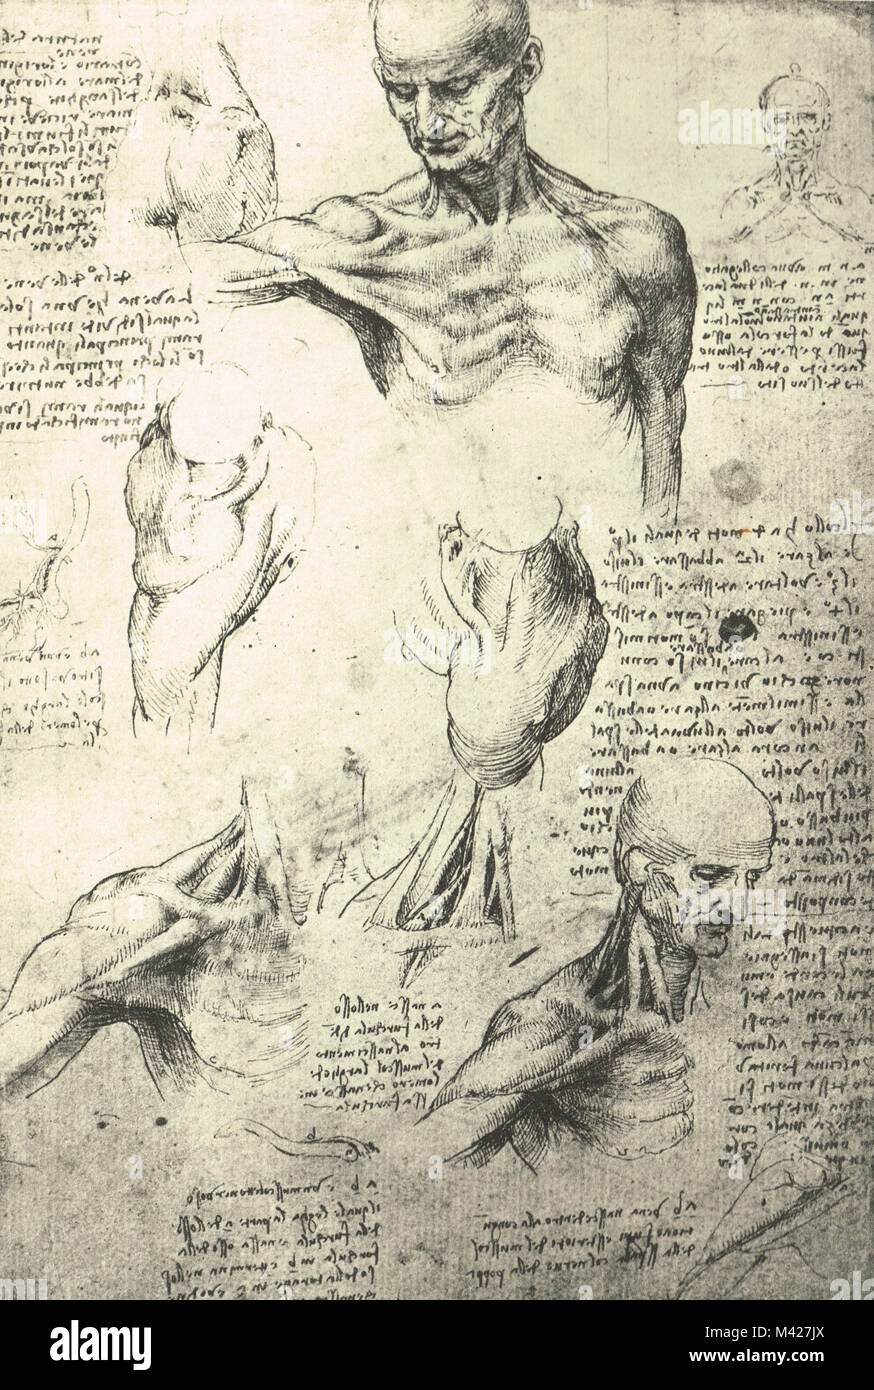 Study Anatomy Leonardo Da Vinci Stock Photos & Study Anatomy ...